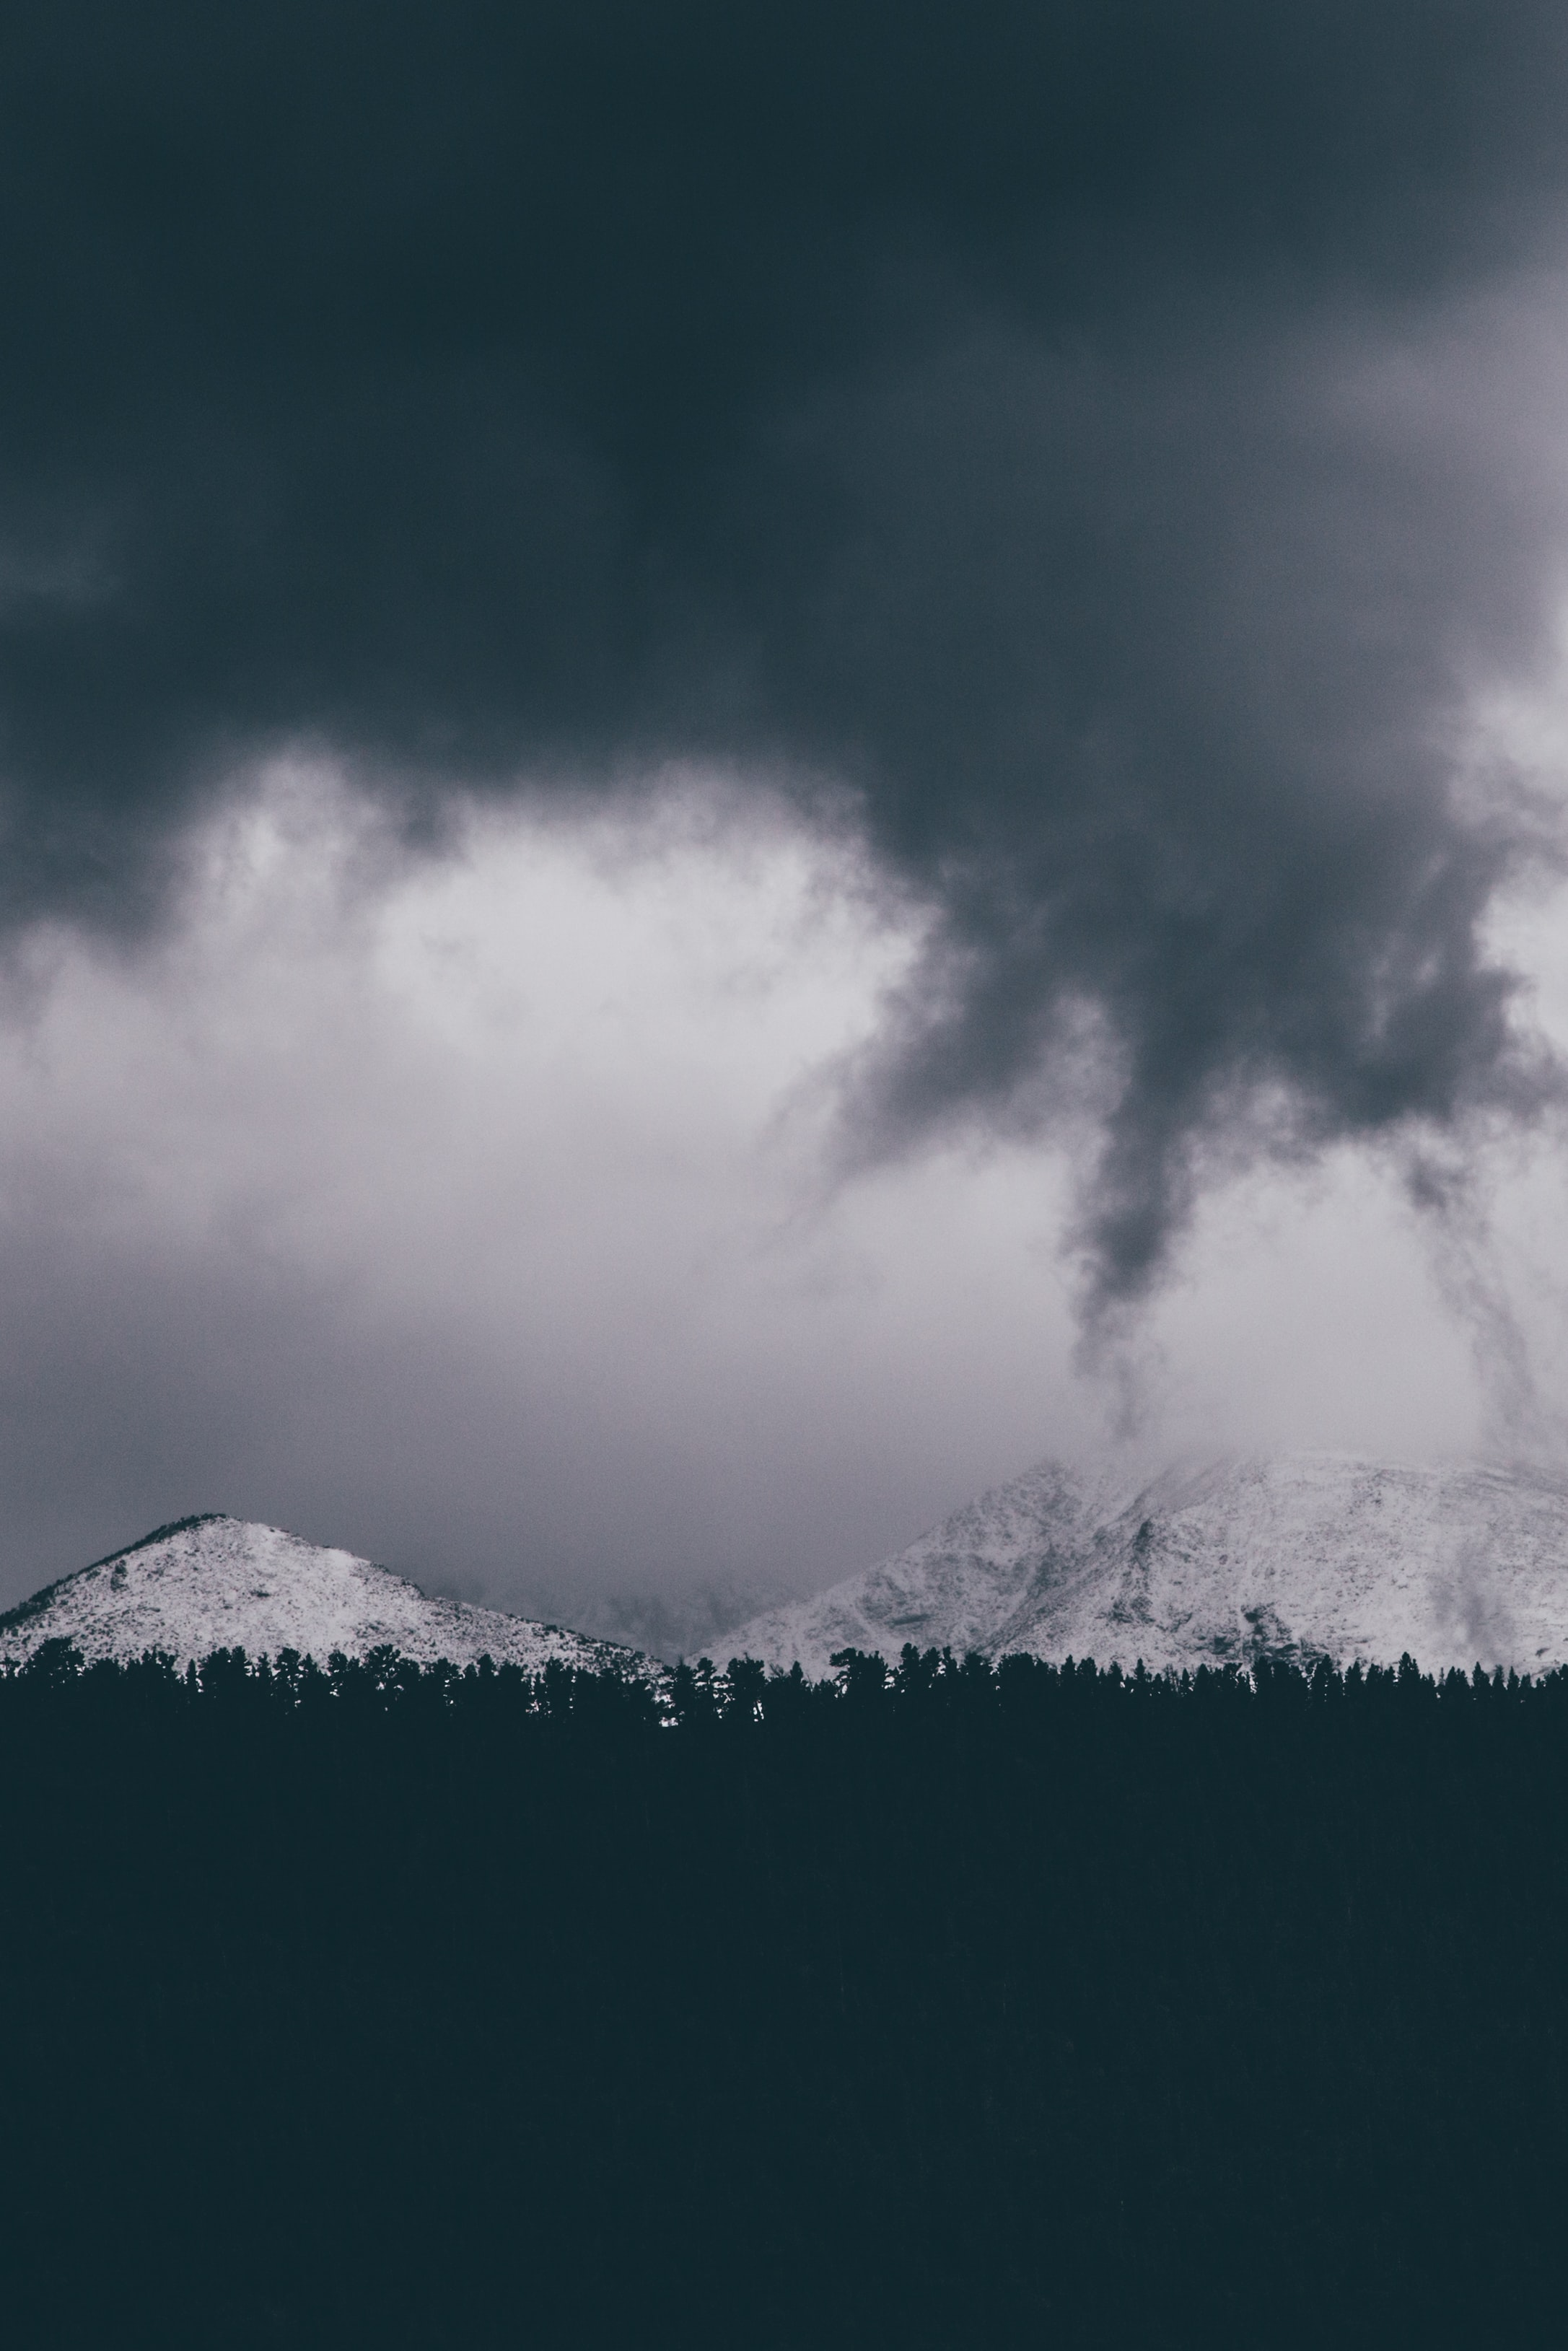 A bleak shot of white mountains over a dark treeline on a cloudy day